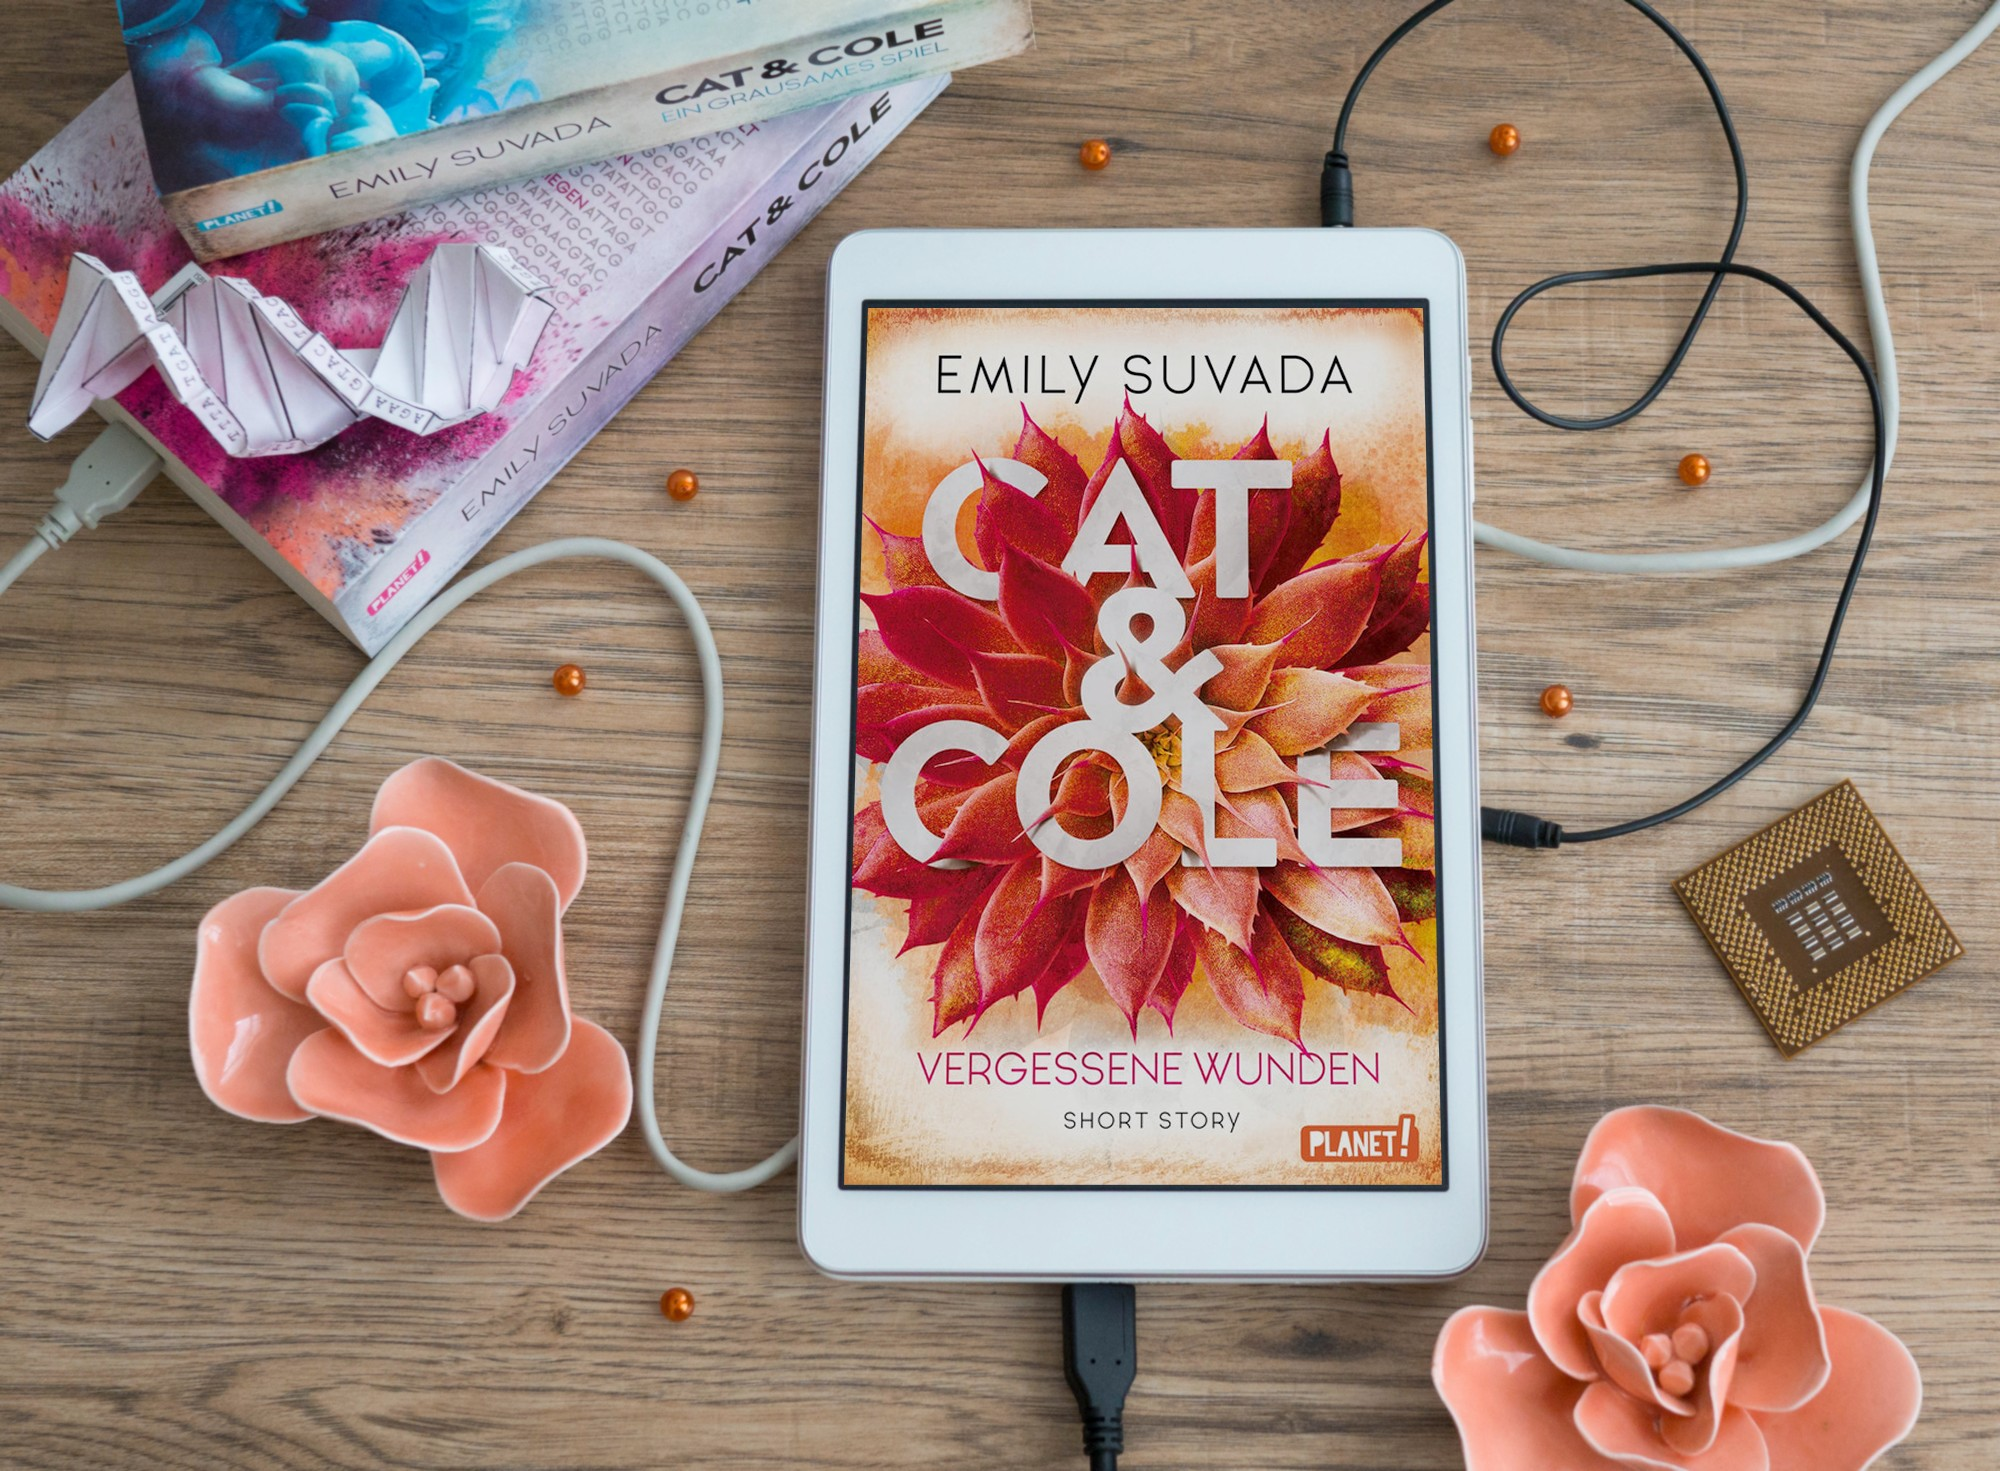 Cat & Cole: Vergessene Wunden – Emily Suvada graphic